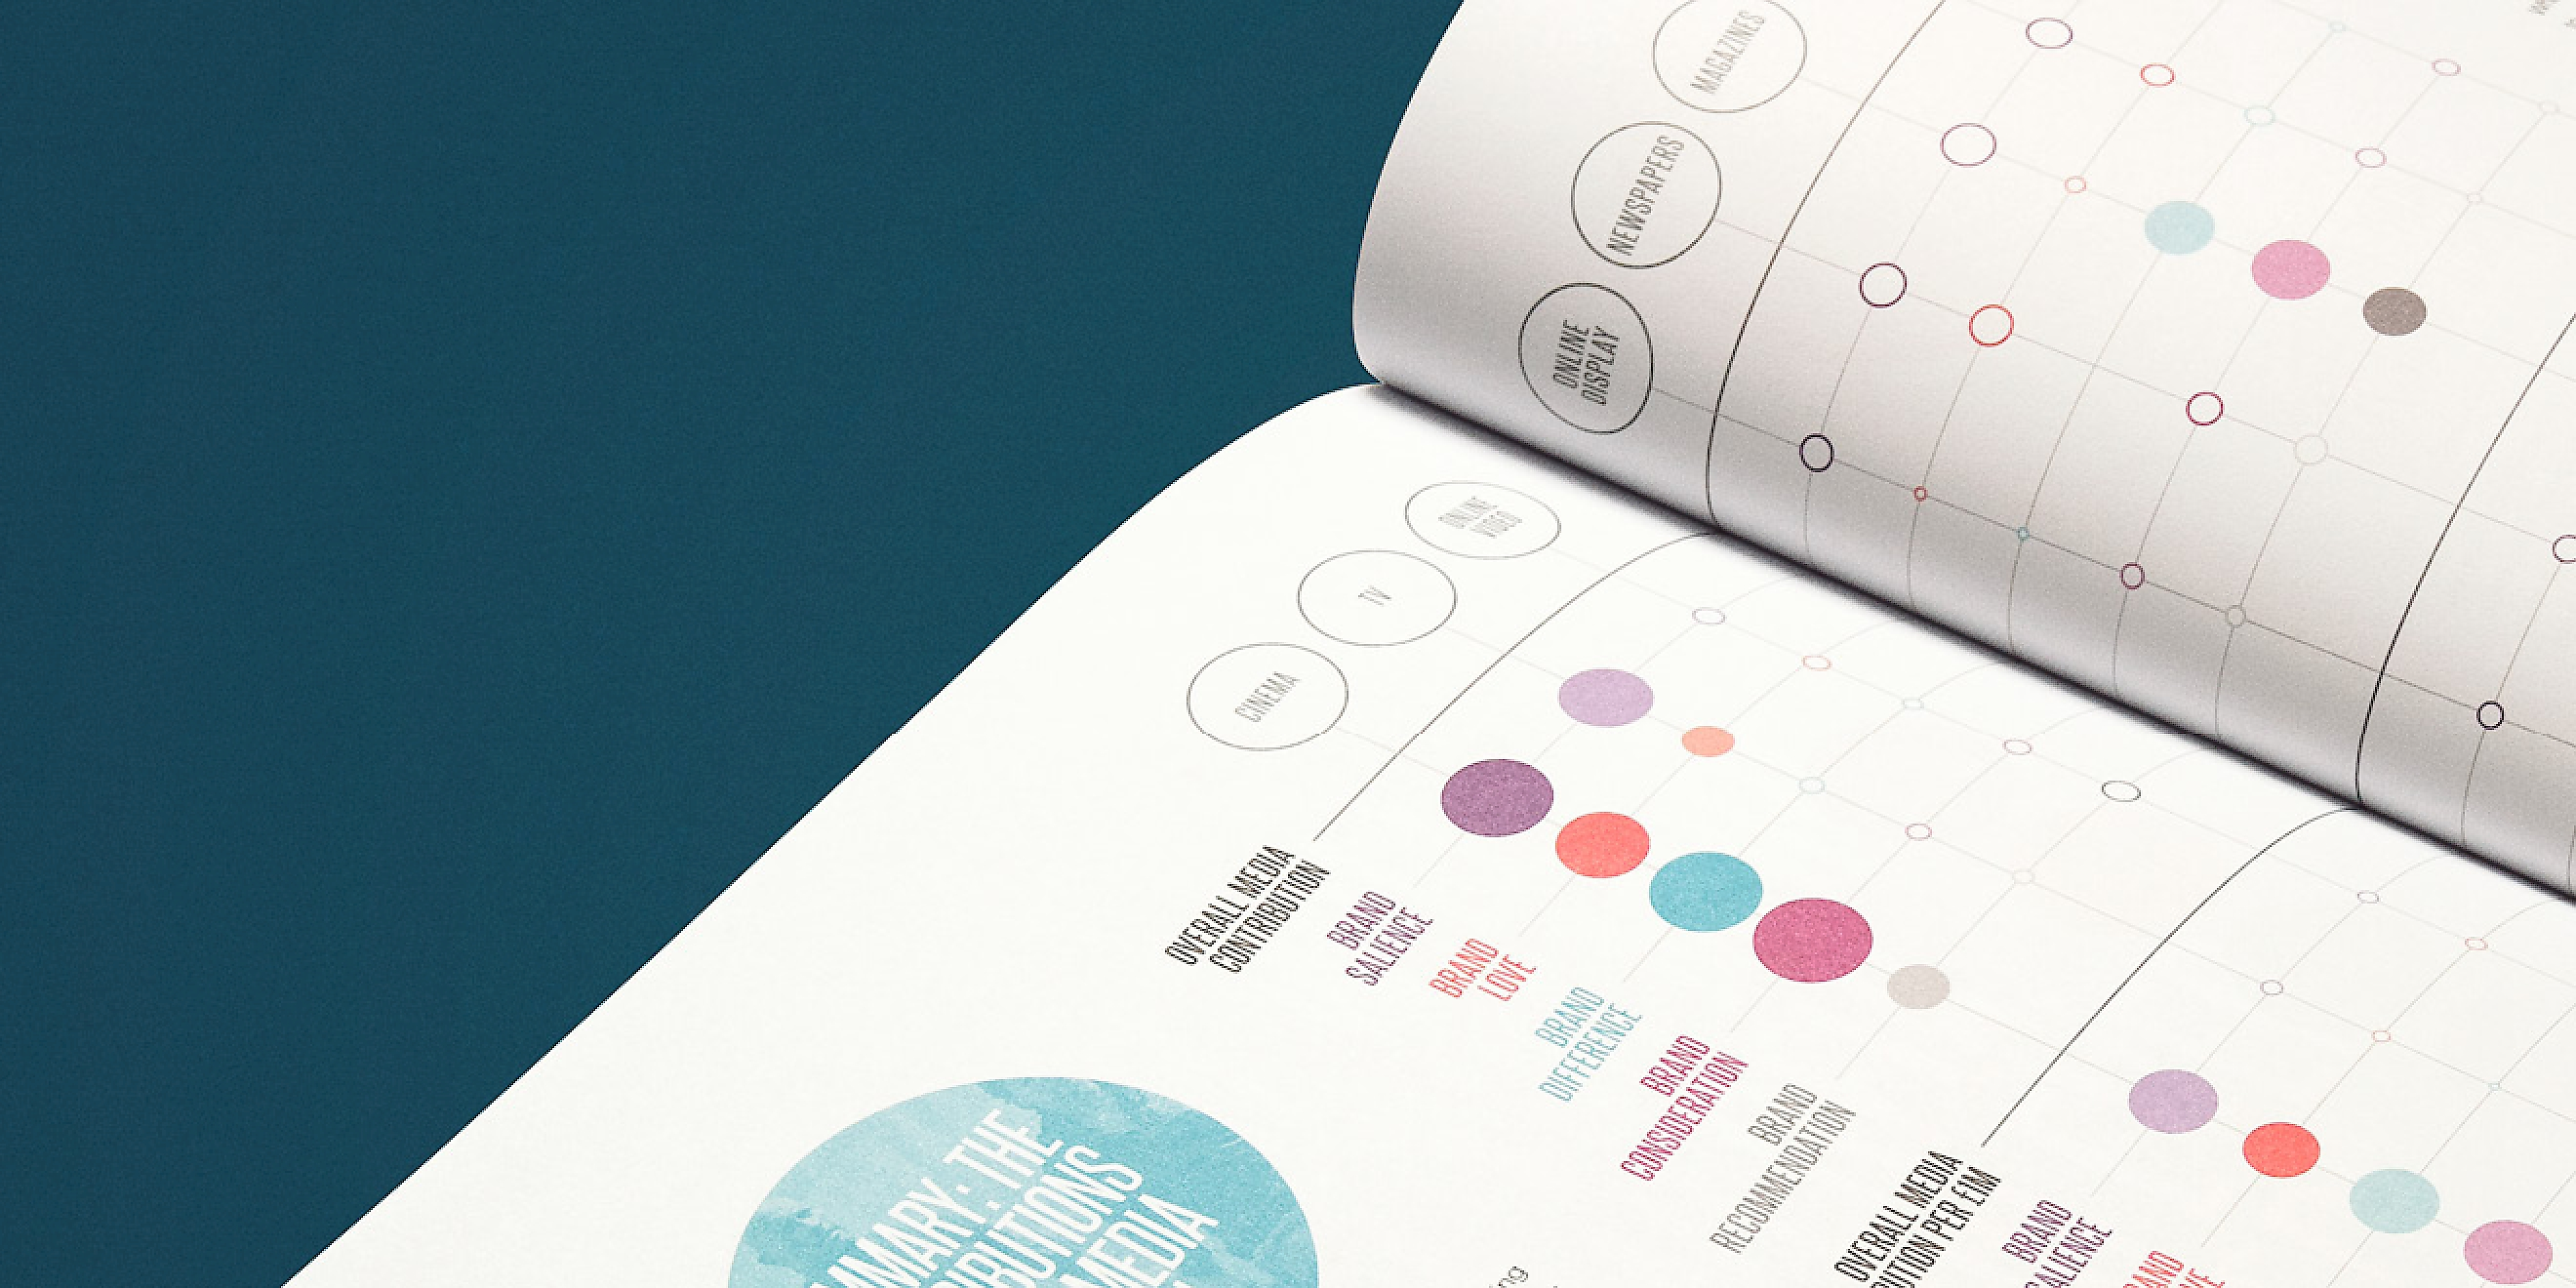 DCM Annual Report designed and created by Human After All